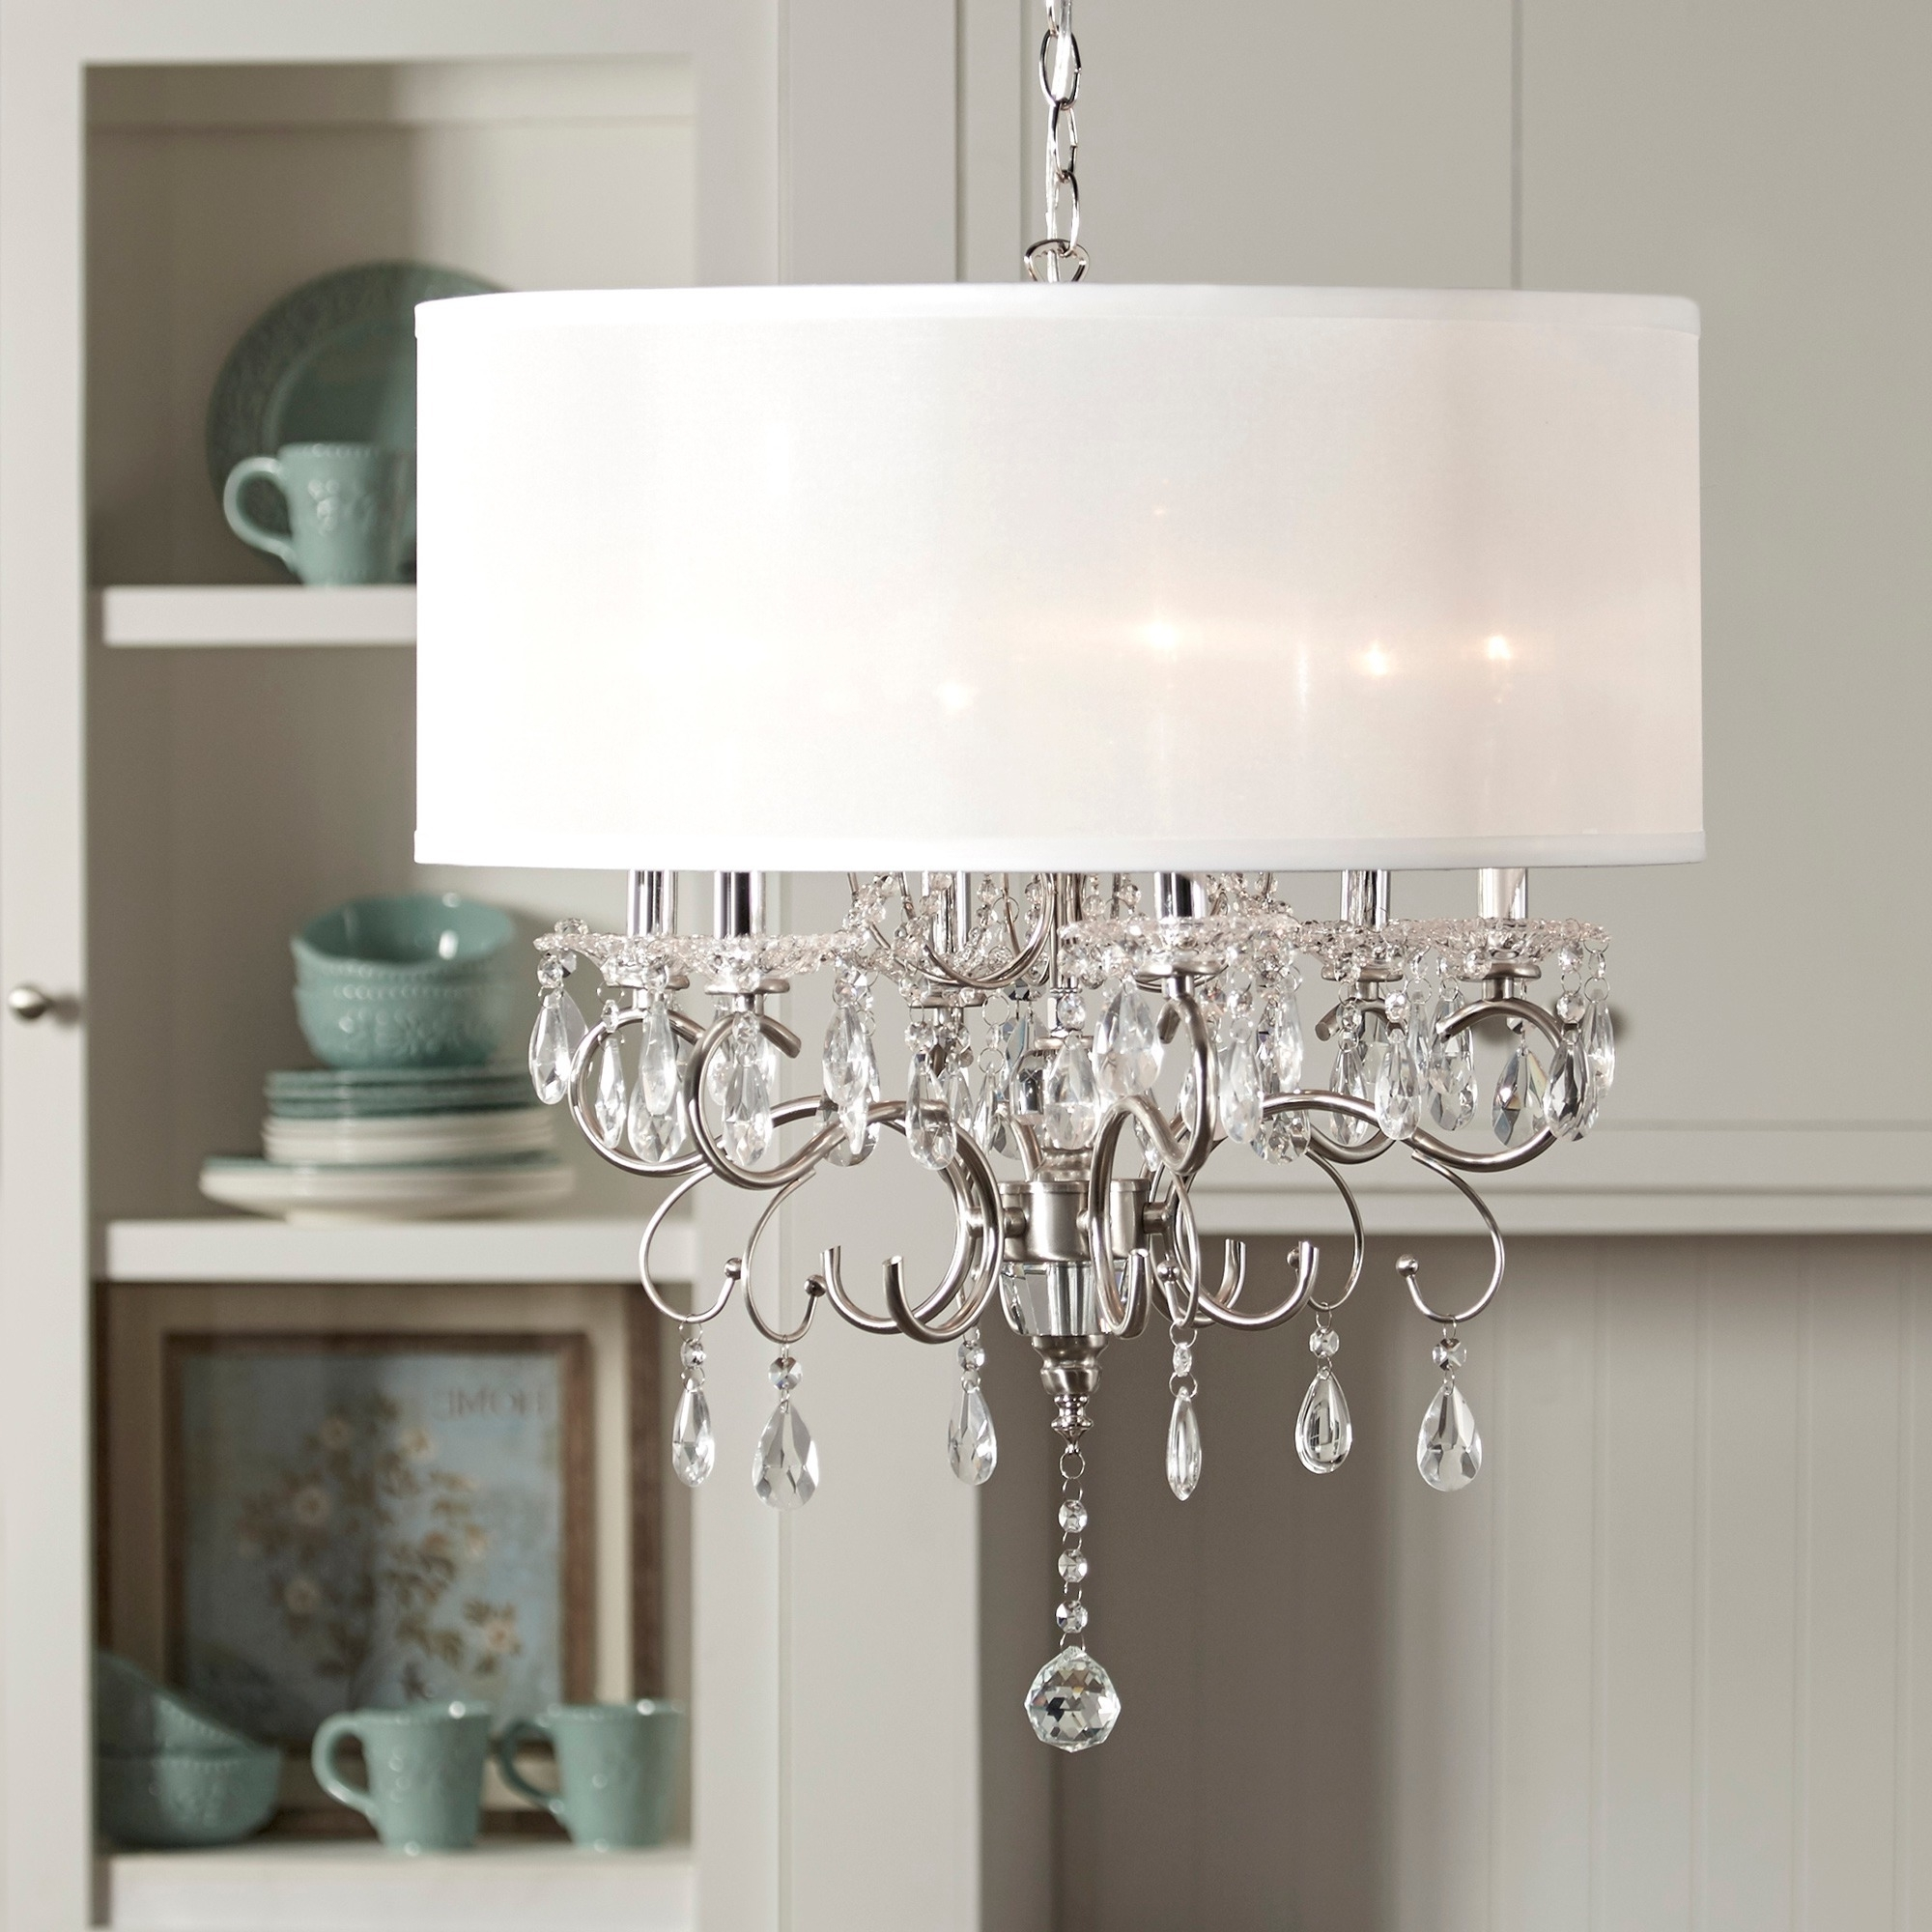 Popular Wall Mounted Chandelier Lighting Regarding Lighting: Crystal Drum Light Pendant With Wall Mount Shelves For (View 11 of 15)